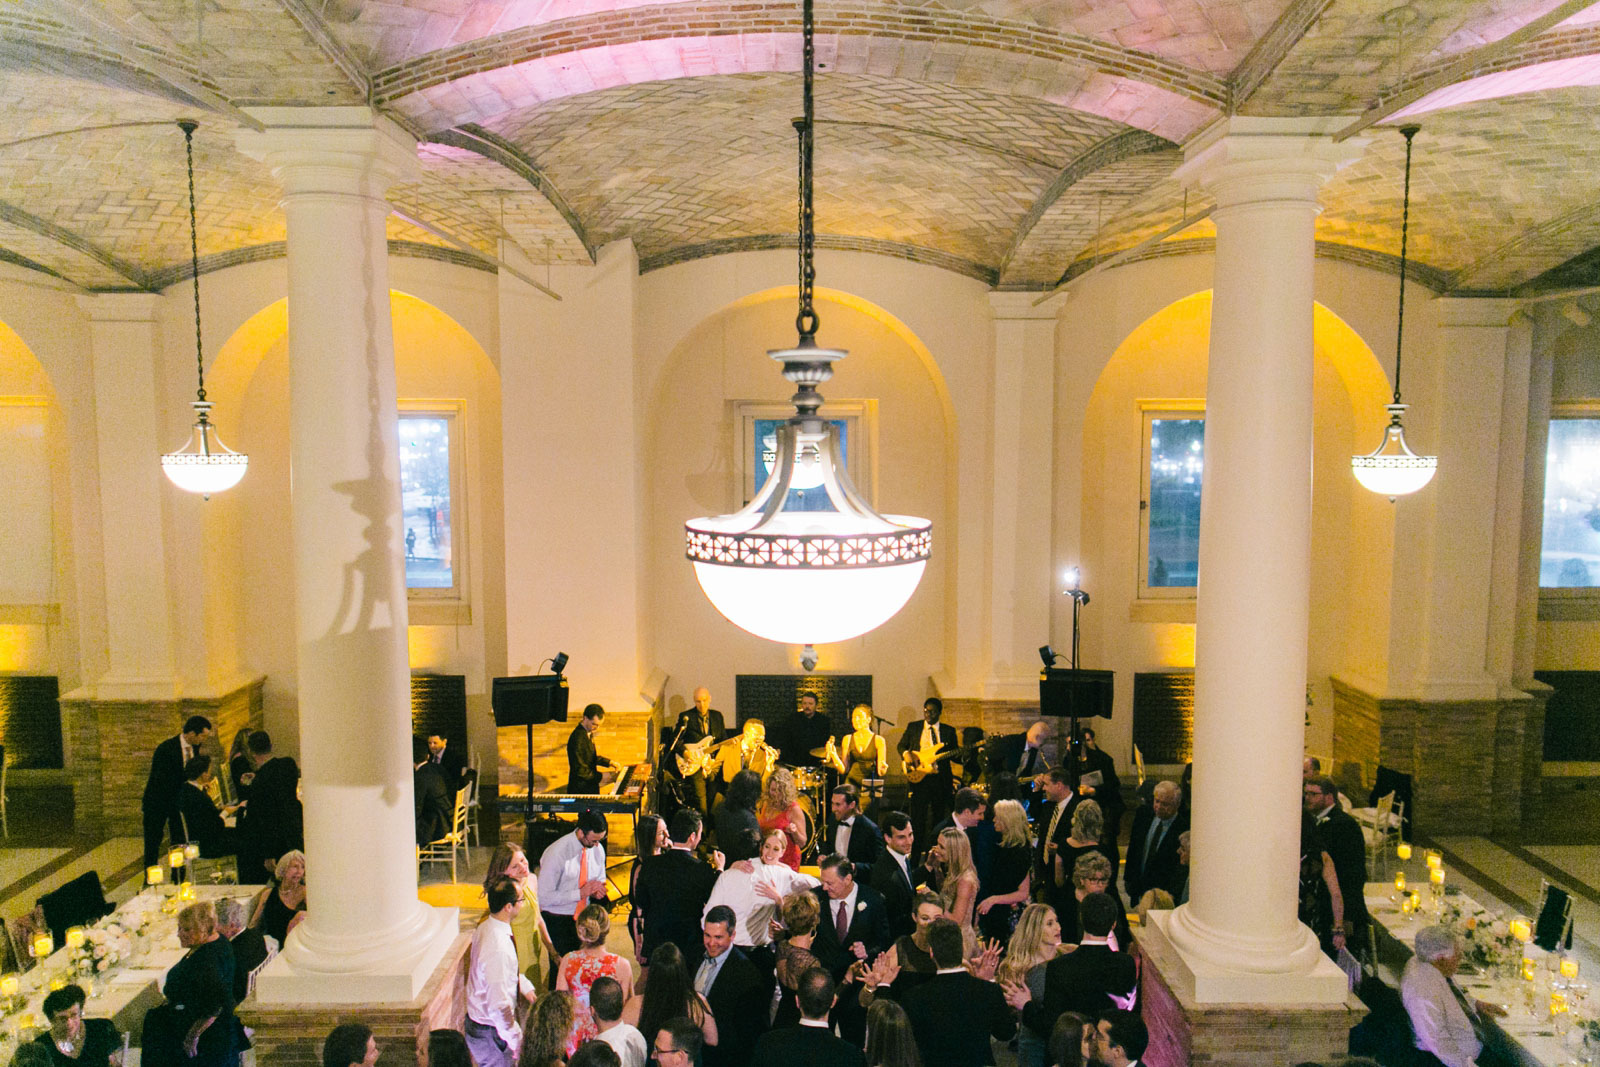 wedding guests partying on dance floor at Boston Public Library wedding reception in Guastavino room